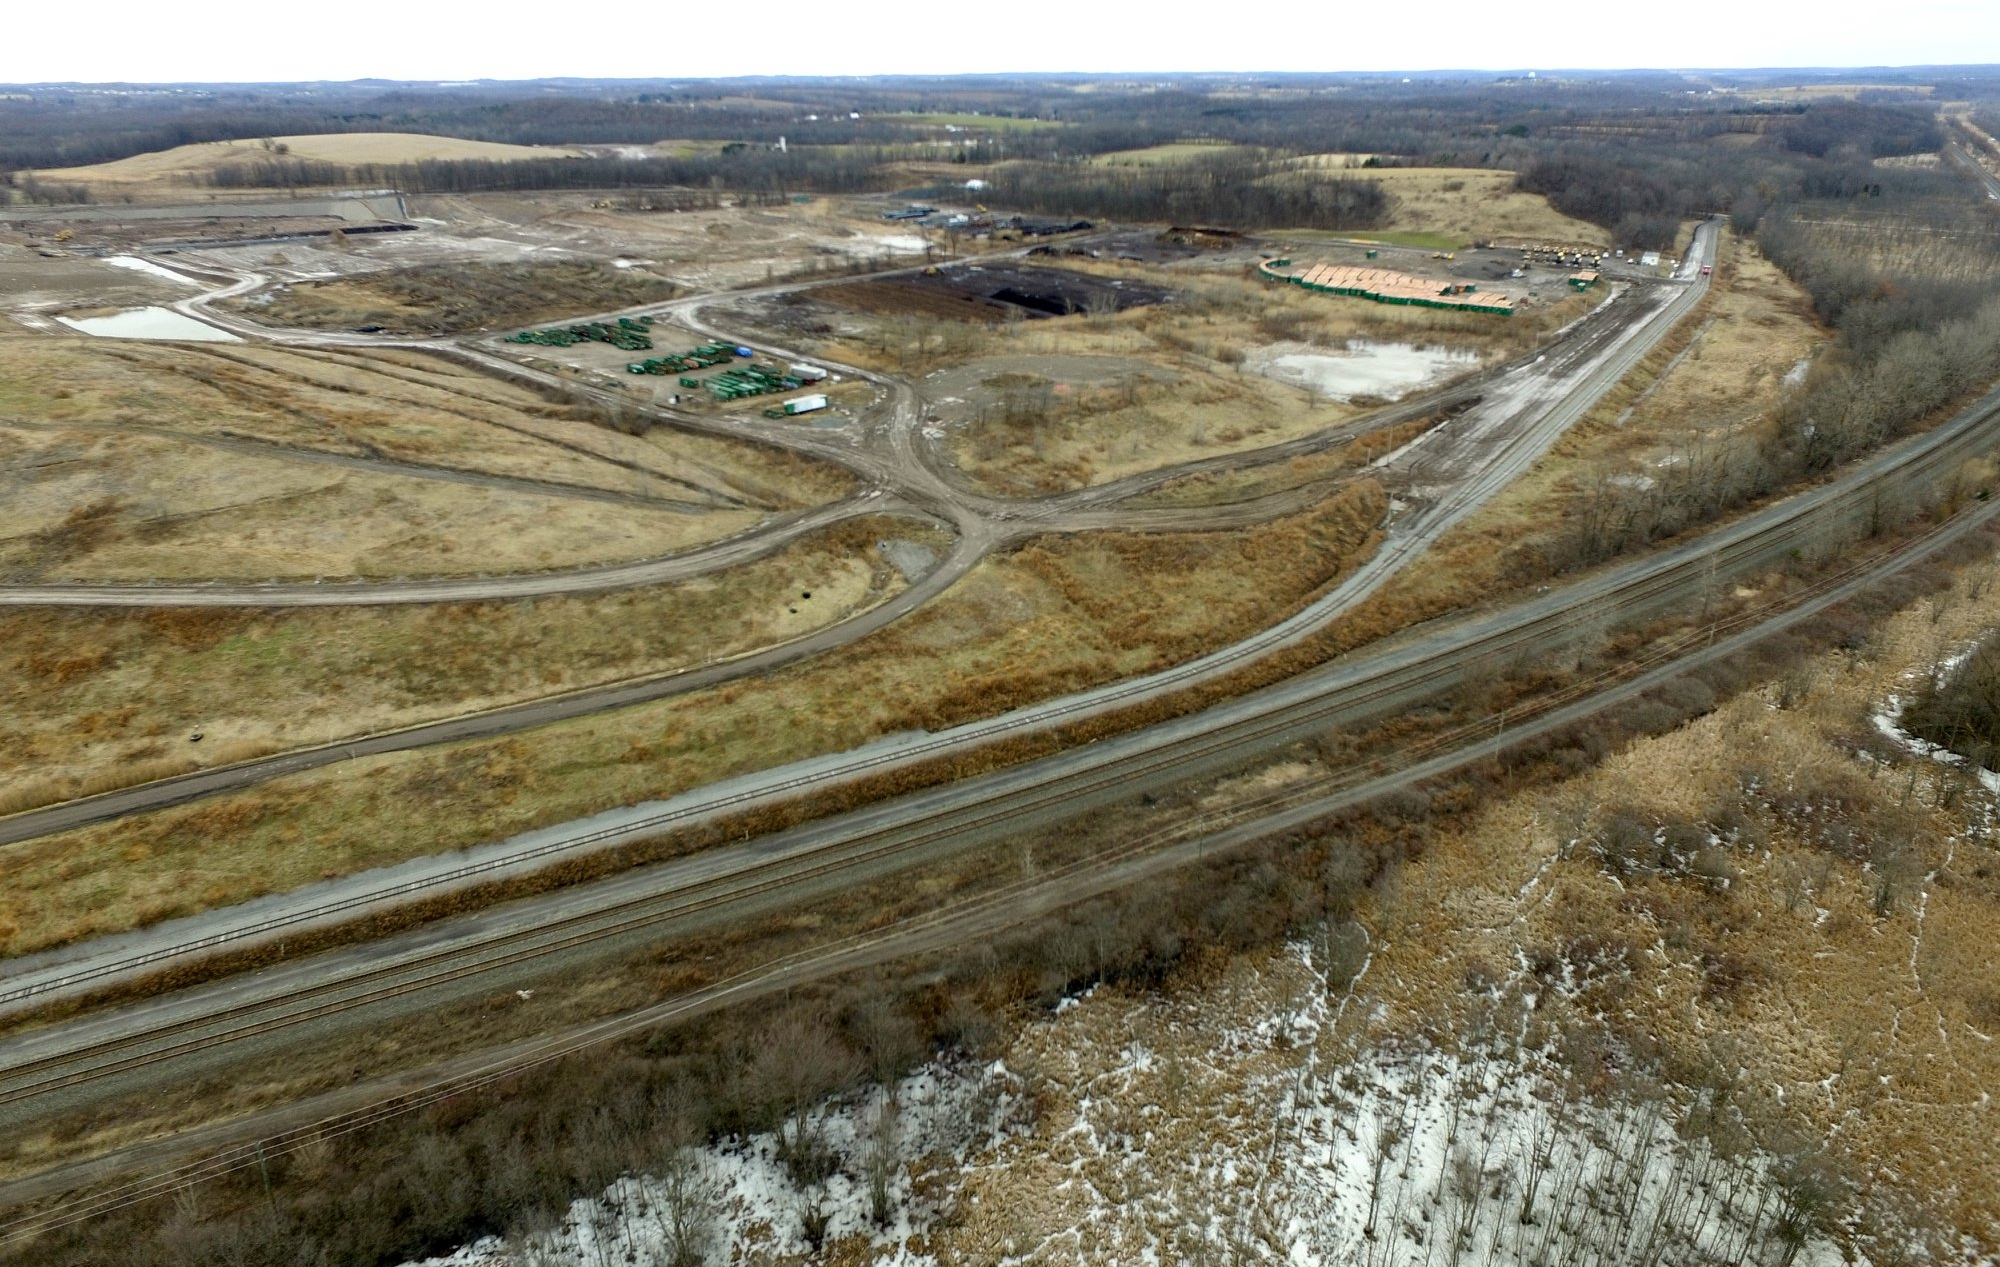 High Acres Landfill - February 24, 2018